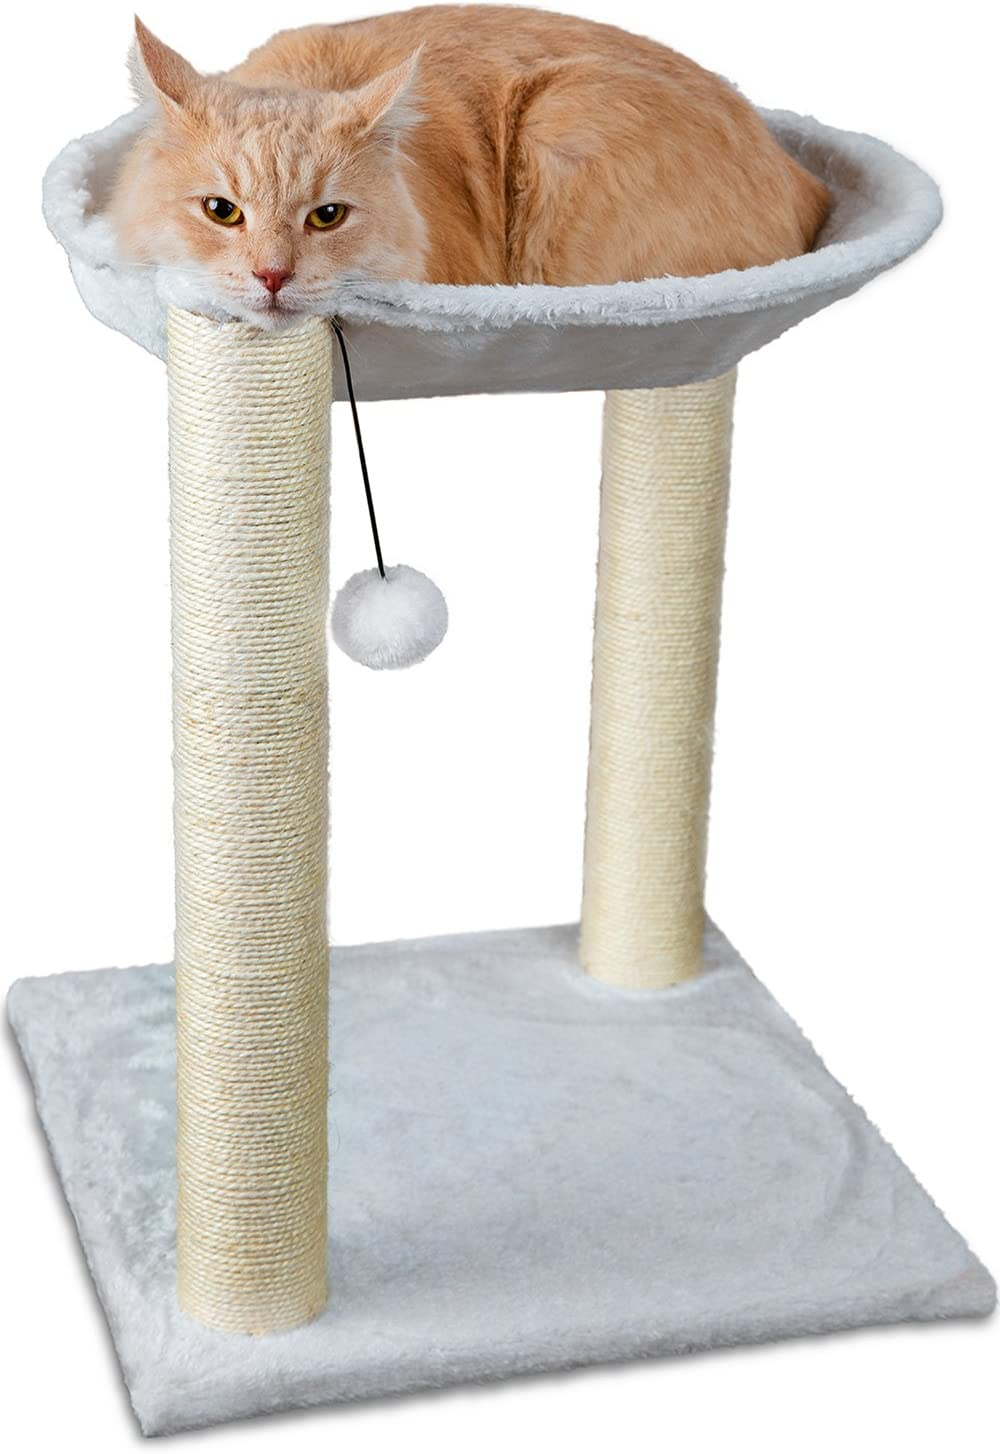 7. Paws & Pals 3-in-1 Cat Scratching Post w/Hammock & Toy